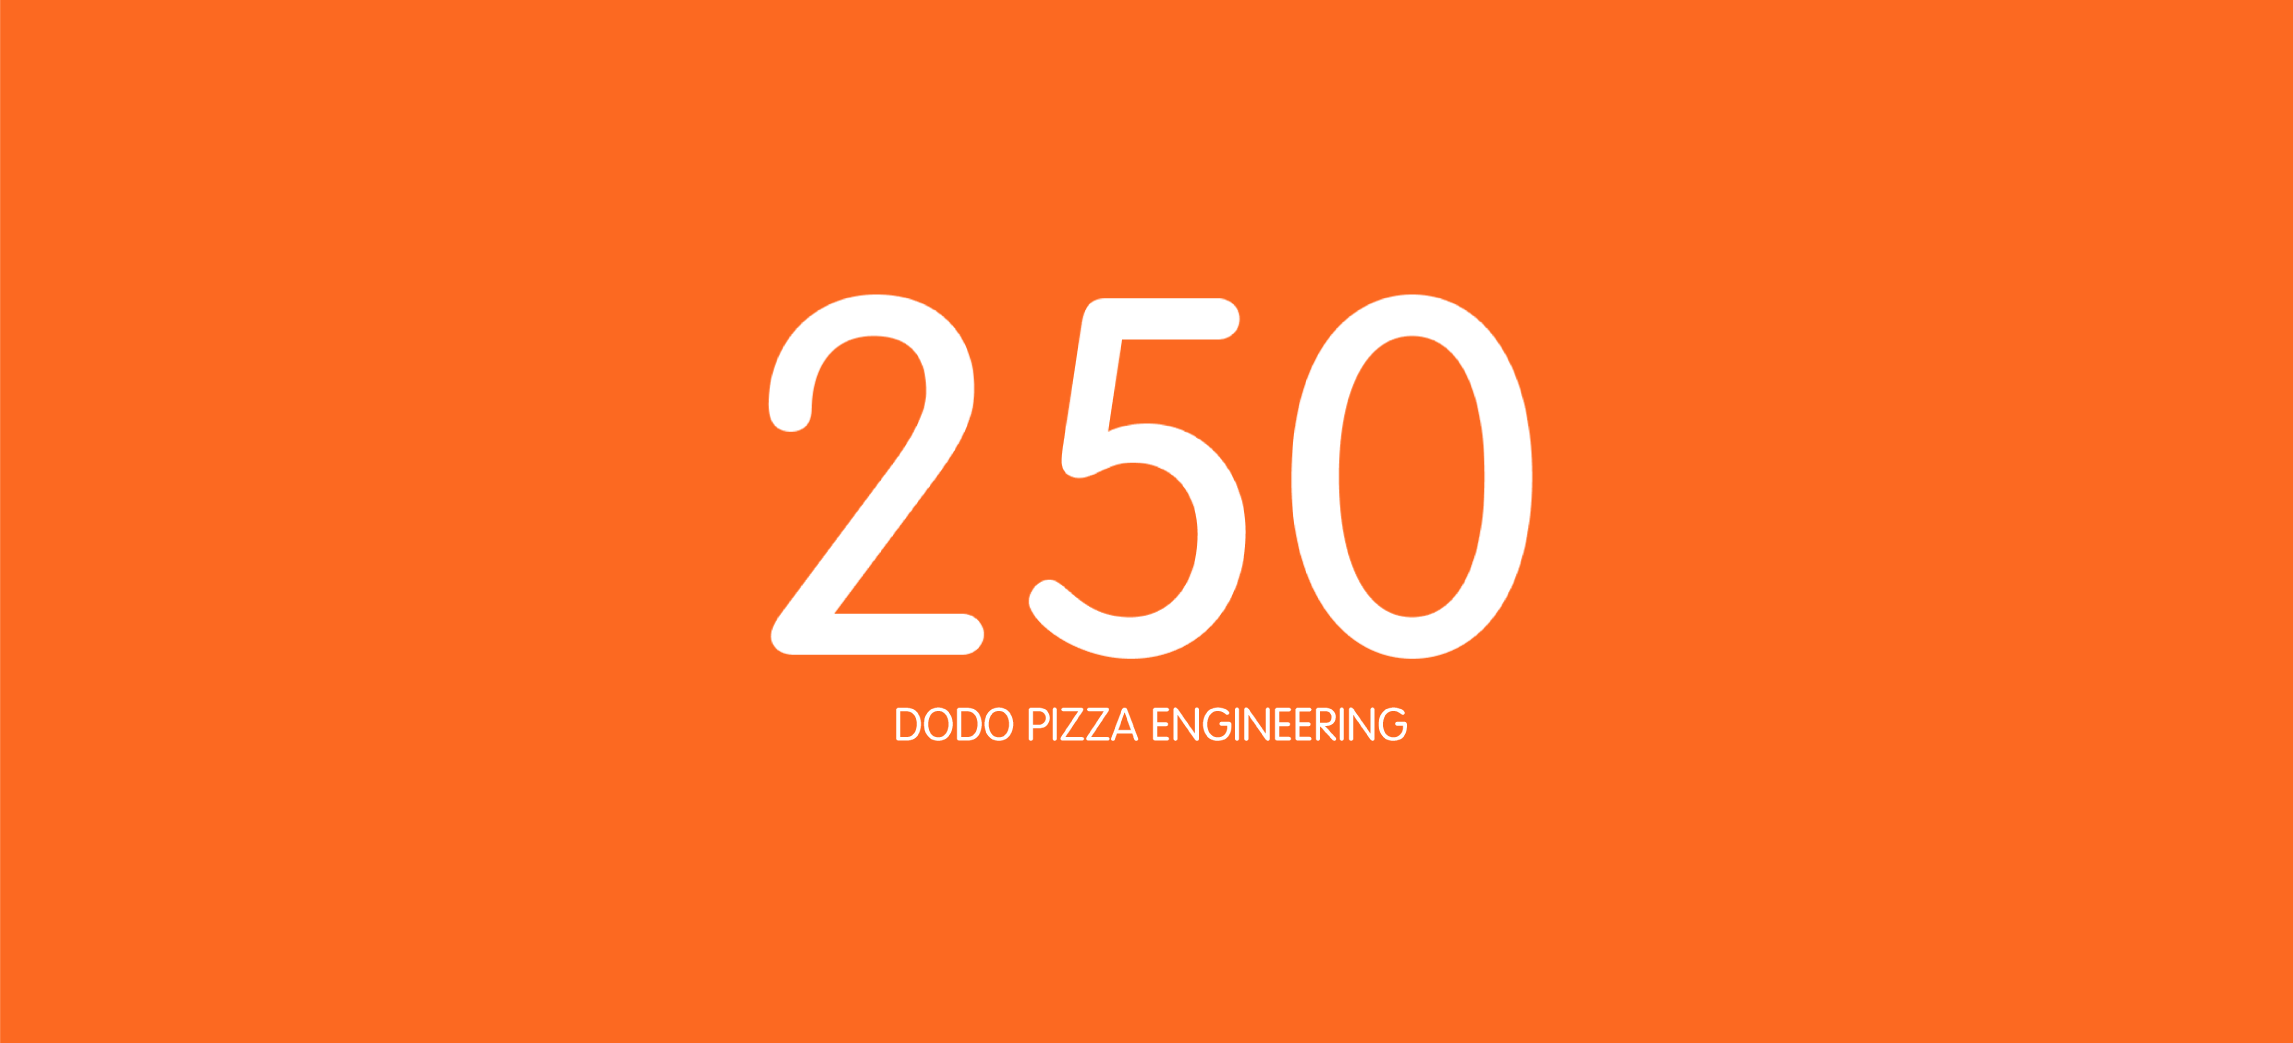 Why does Dodo Pizza need 250 developers? - 1